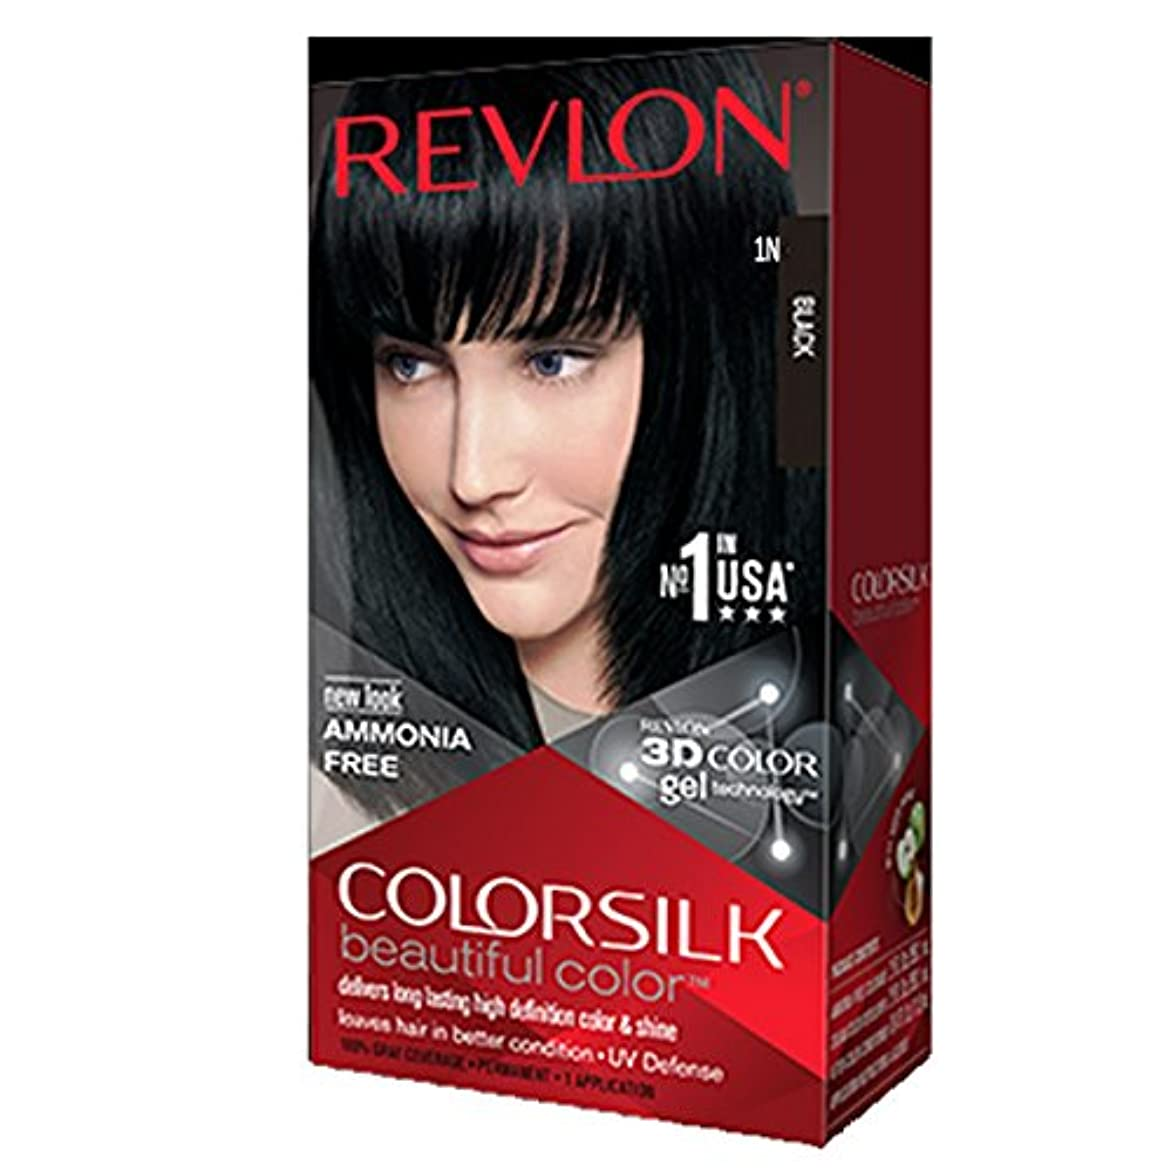 症候群ゼロクローゼットRevlon Colorsilk Hair Color with 3D Color Gel Technology Black 1N